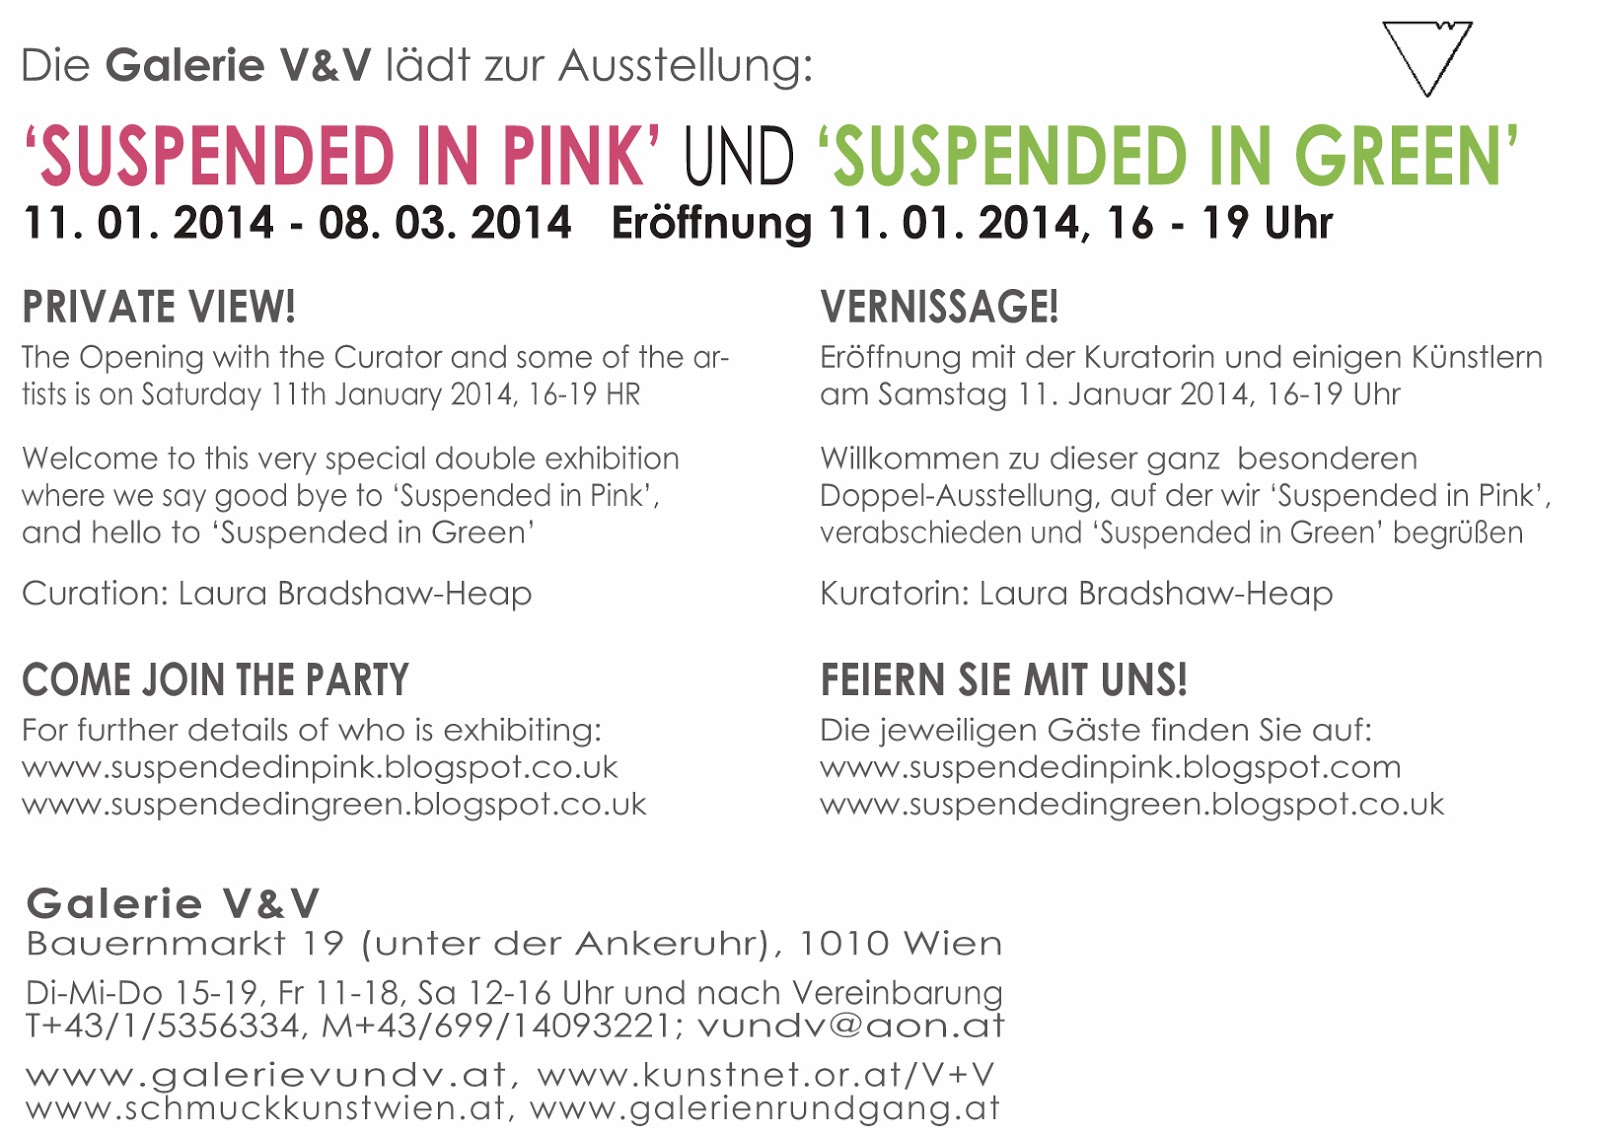 EXPO 'Suspended in GREEN' - V&V Gallery, Vienna (AT) - 11 Janv. - 8 Mars 2014 dans Autriche (AT) V&V2